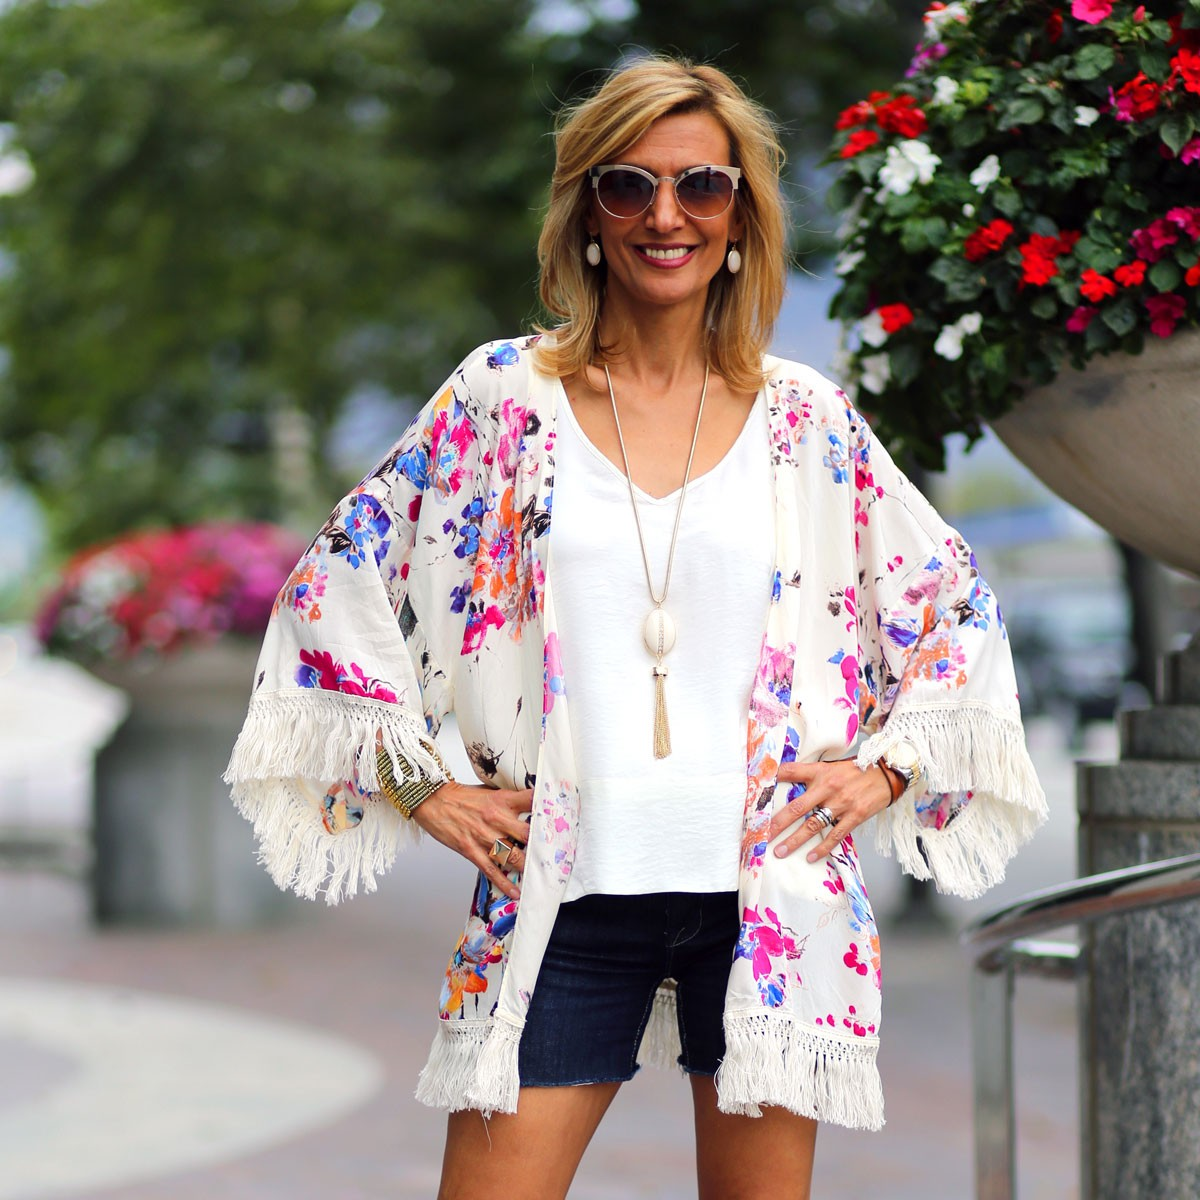 Jacket-Society-Celebrating-the-fourth-of-july-wearing-our-new-rose-kimono-top-featured-1200x1200